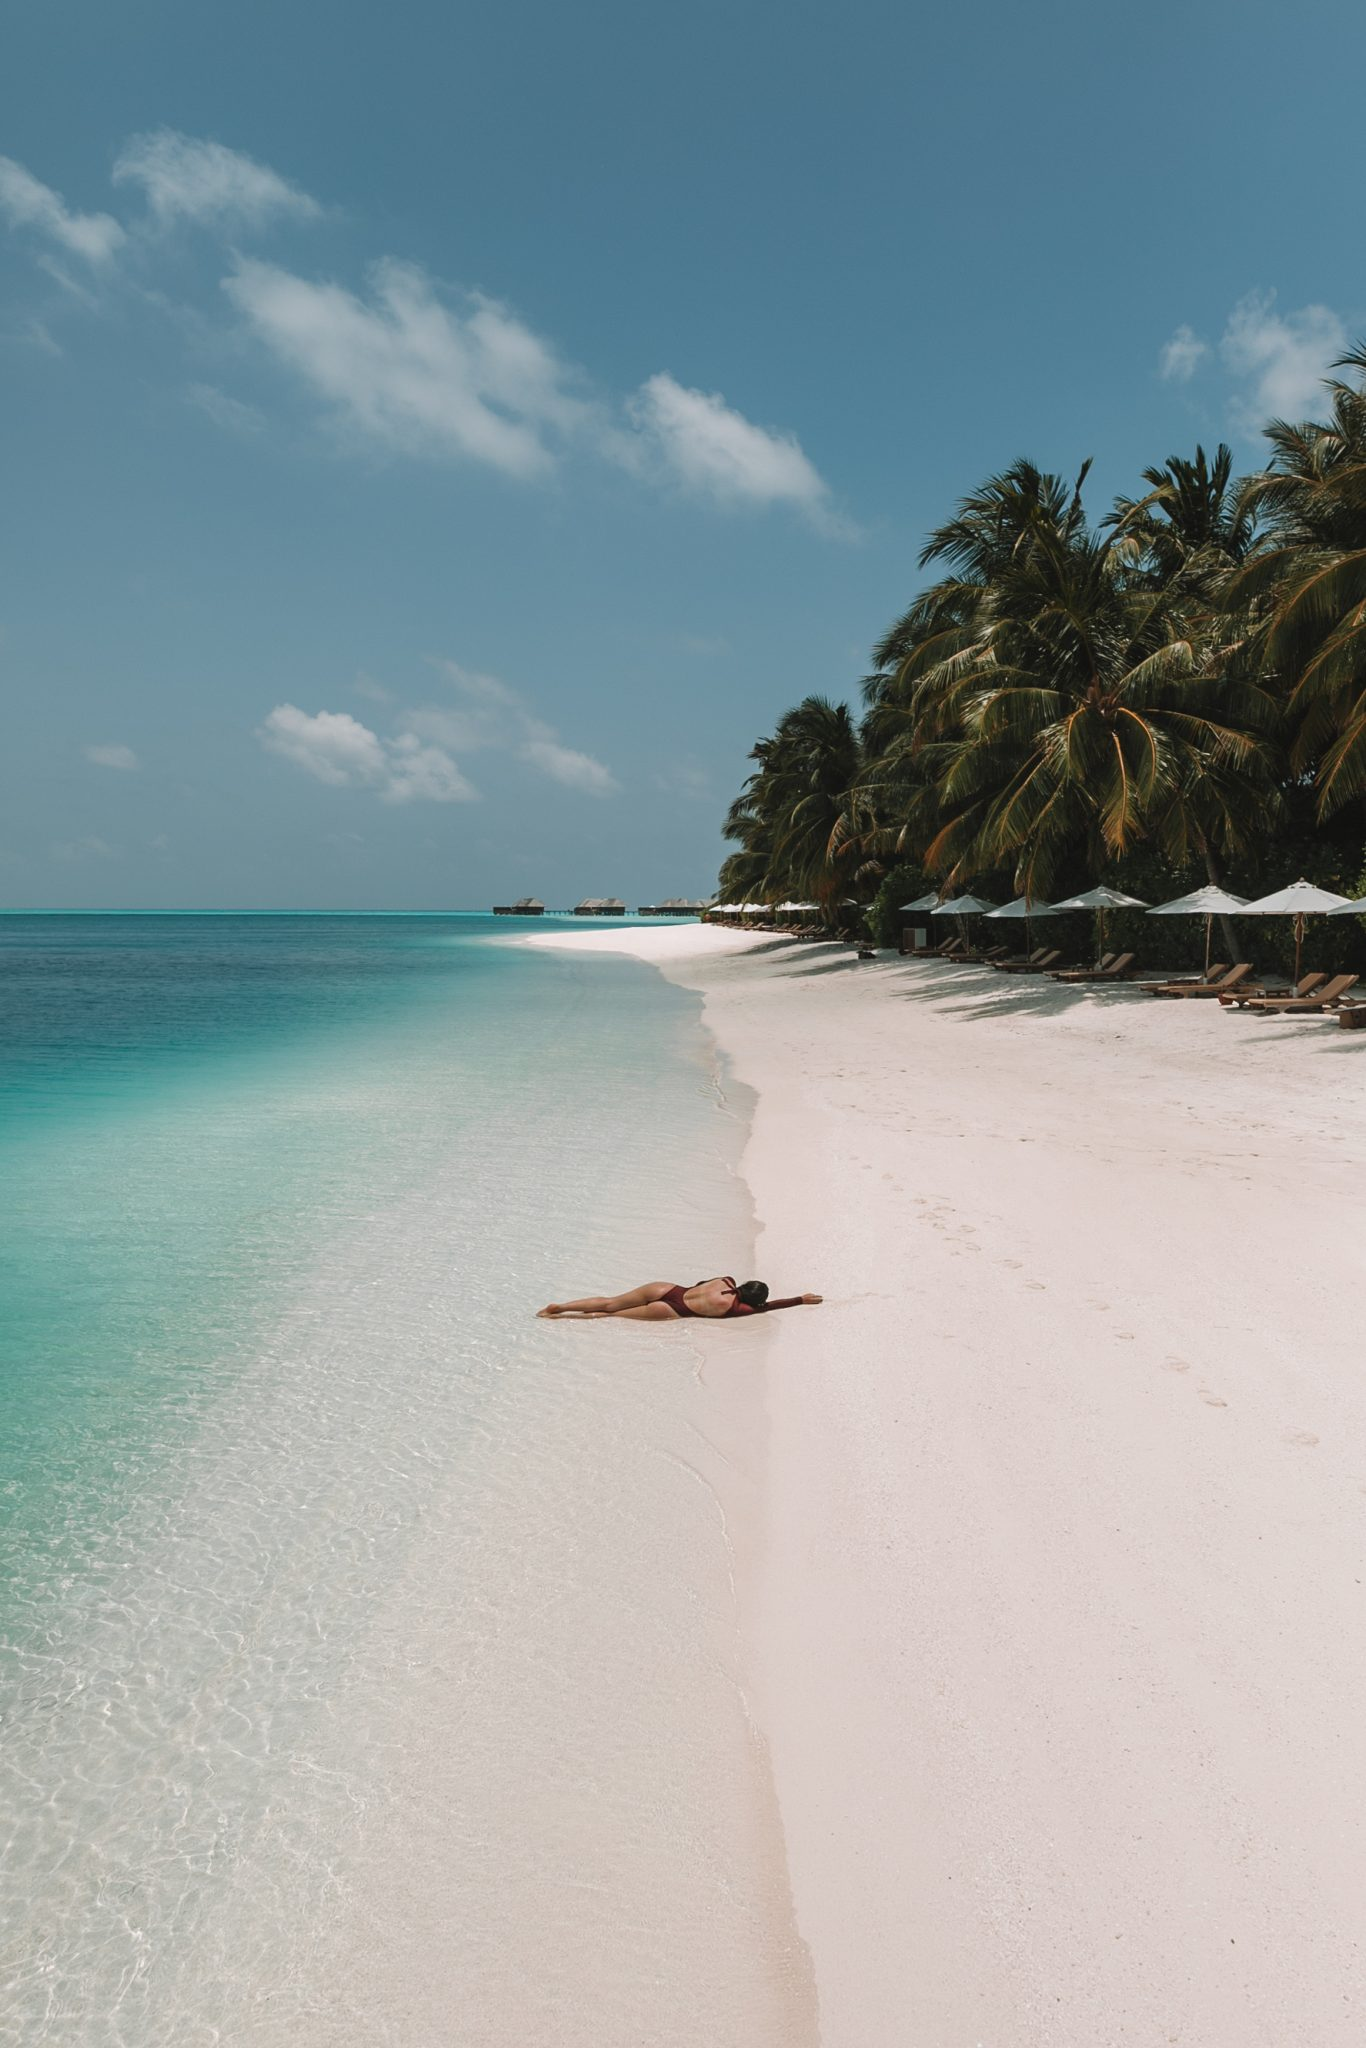 Girl laying on a whitesand beach in the Maldives